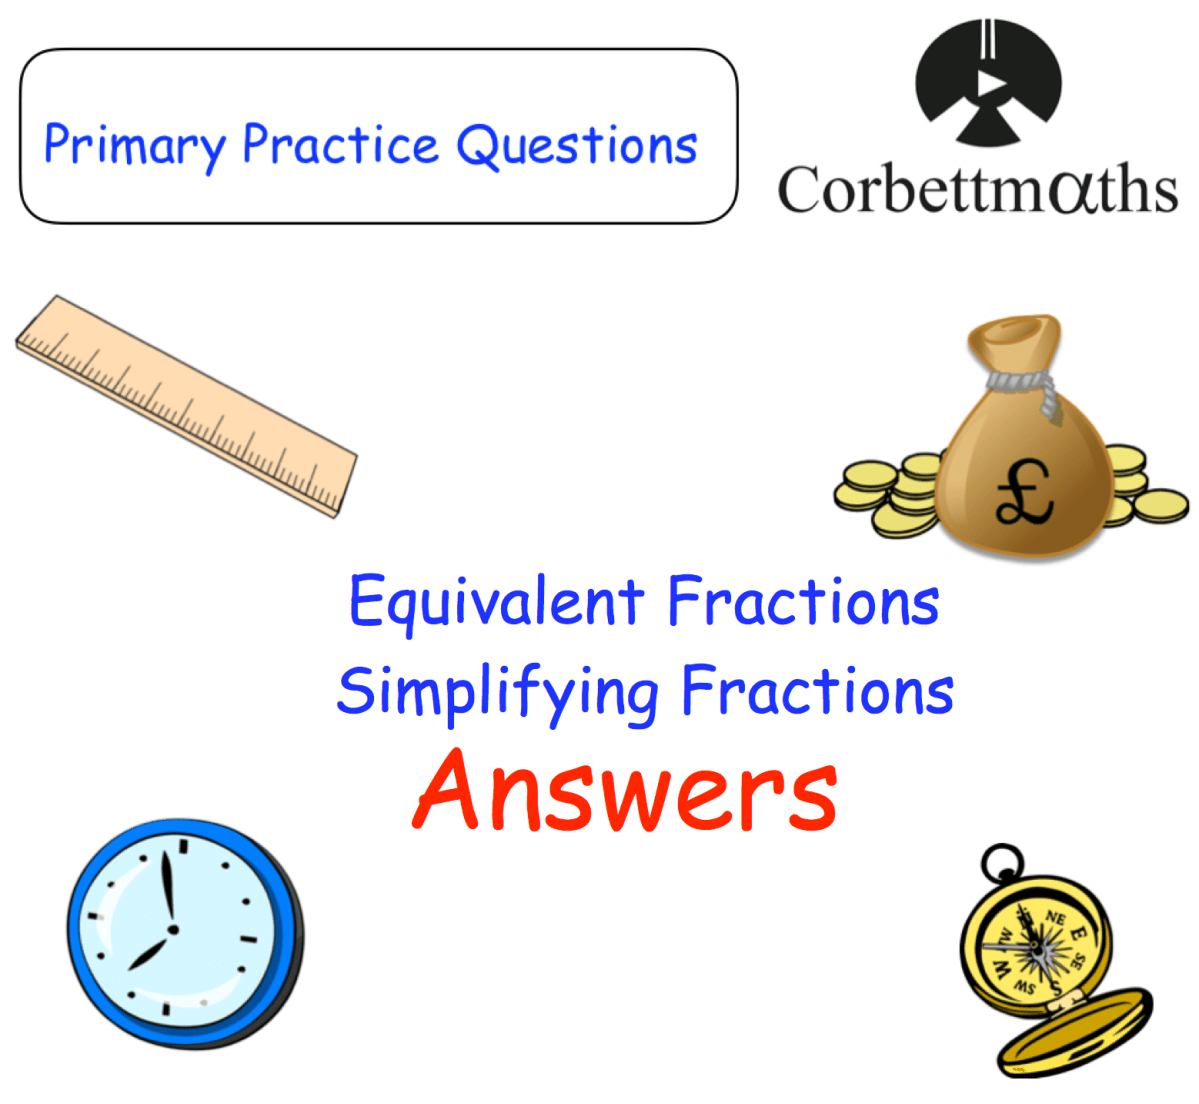 equivalent fractions and simplifying fractions answers